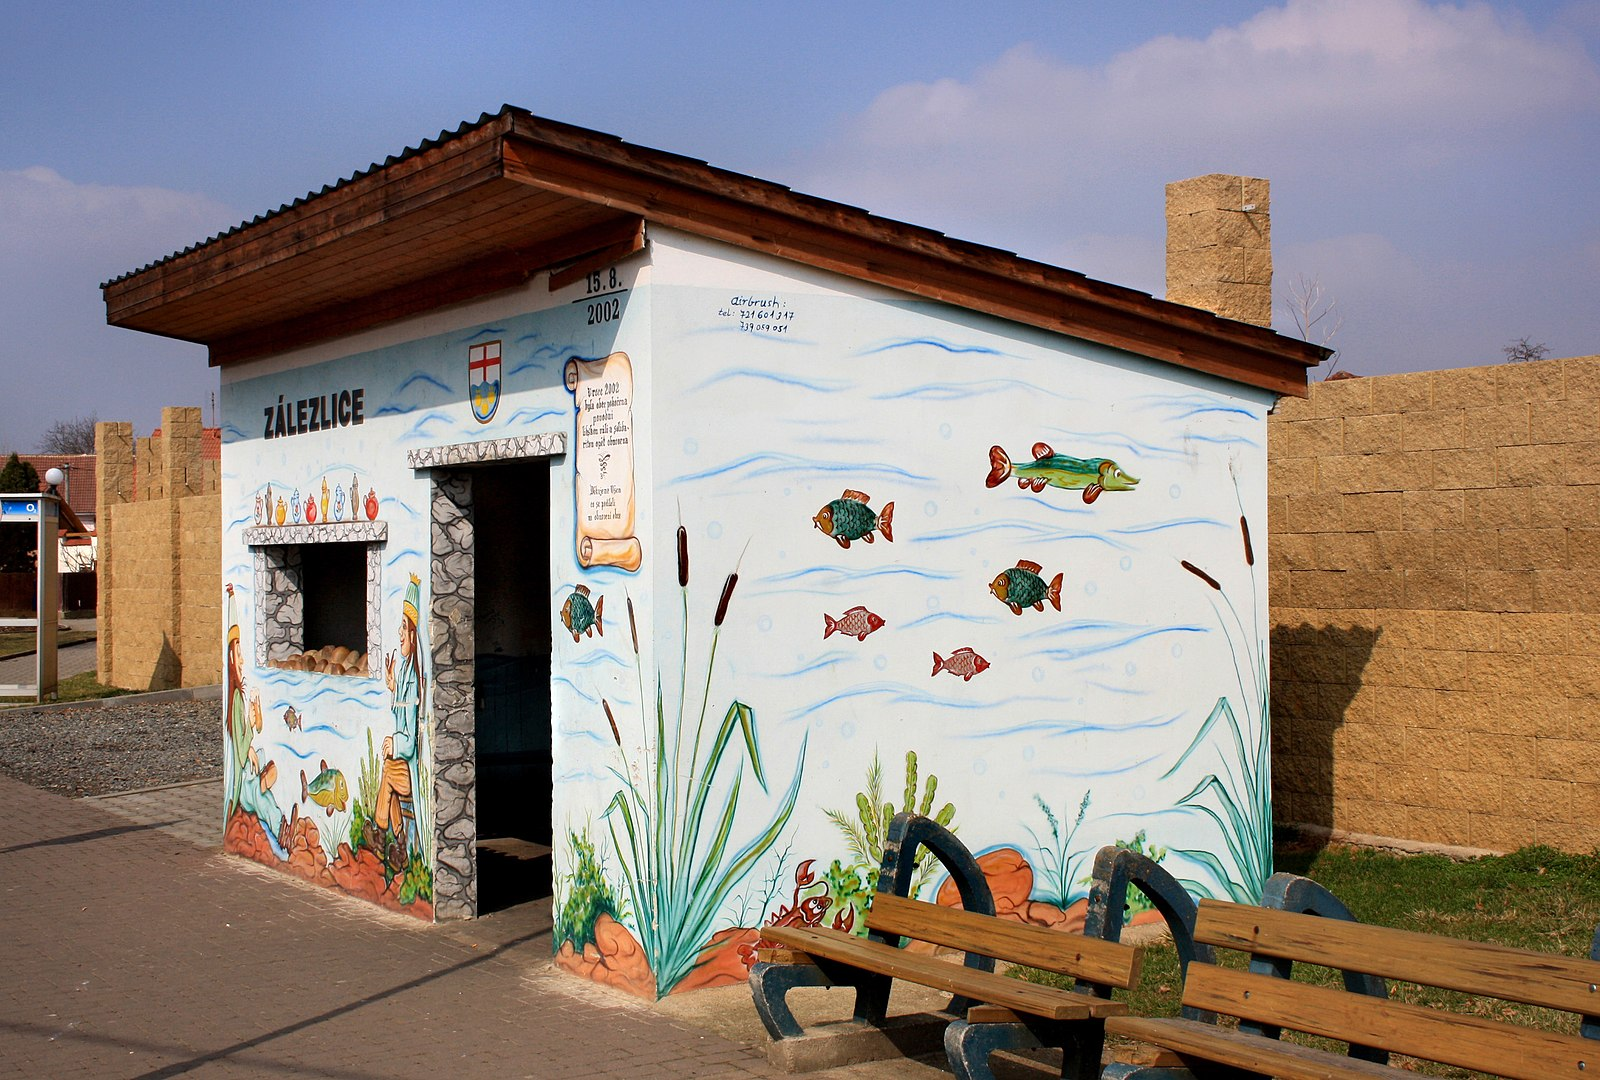 File:Zálezlice, bus shelter.jpg